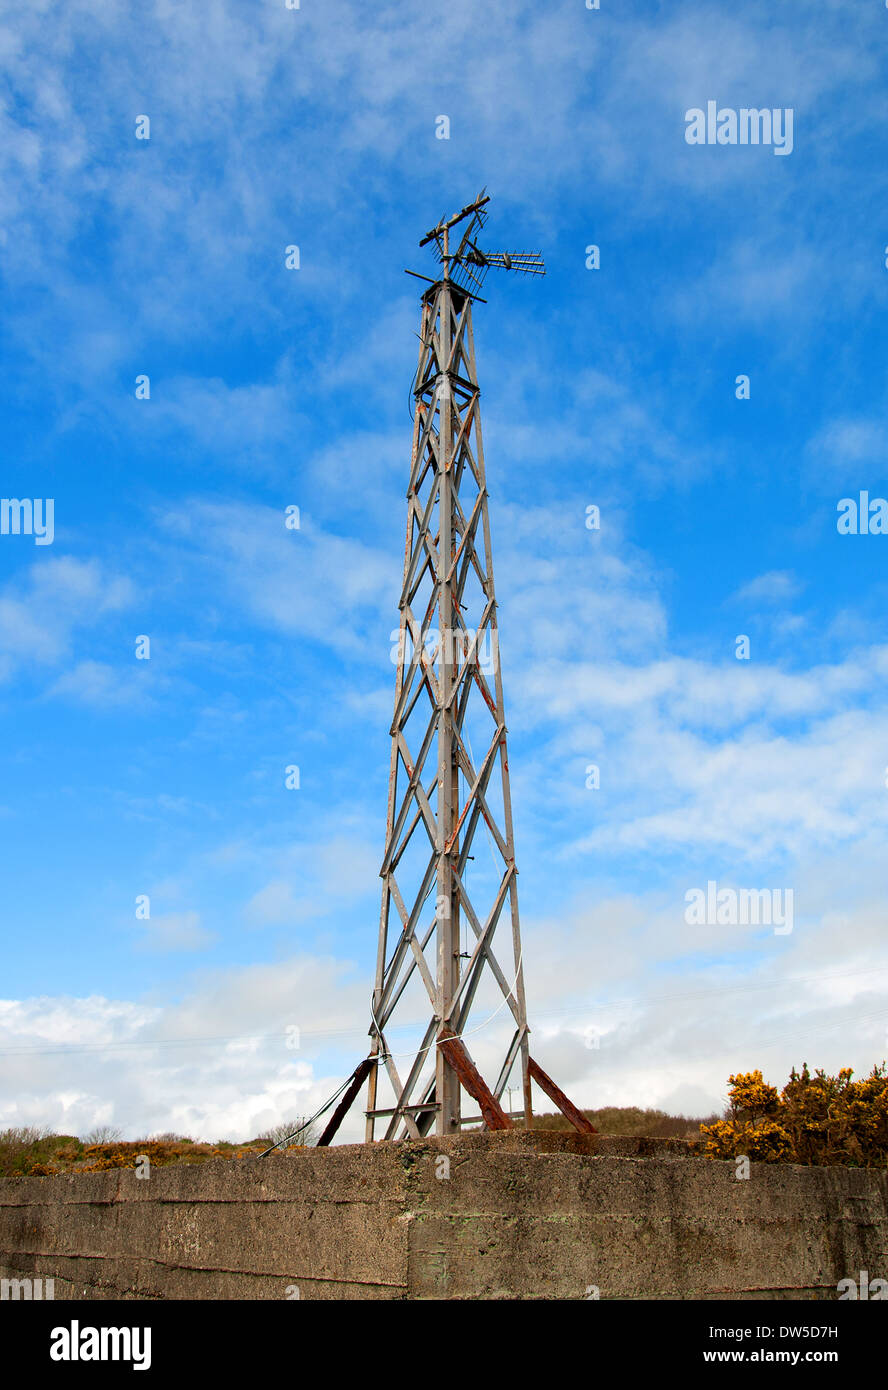 A signal receiver mast at the Porthcurno Telegraph museum, Cornwall, uk - Stock Image